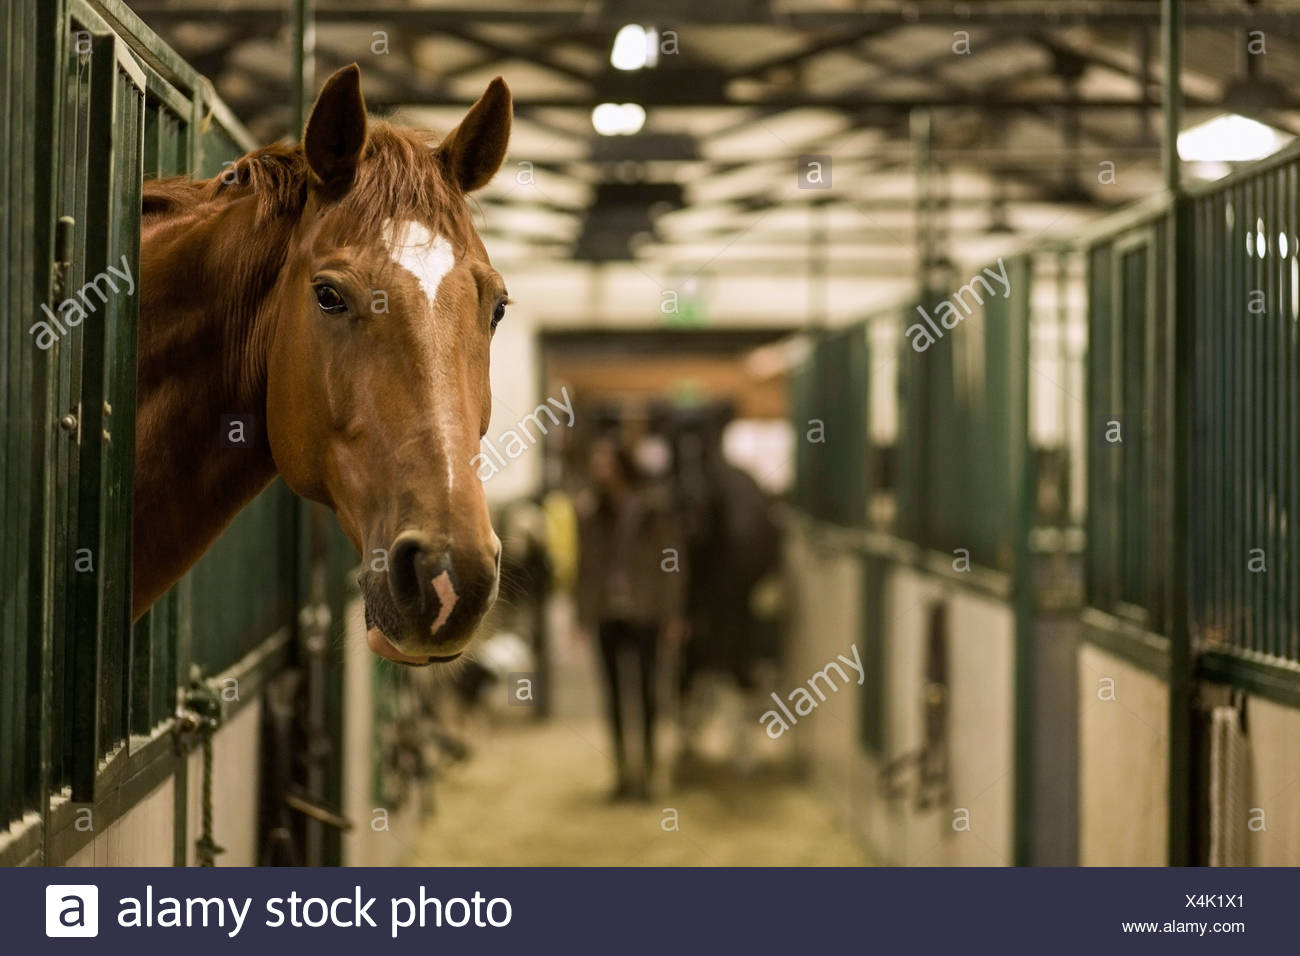 Horse in stall at stable - Stock Image